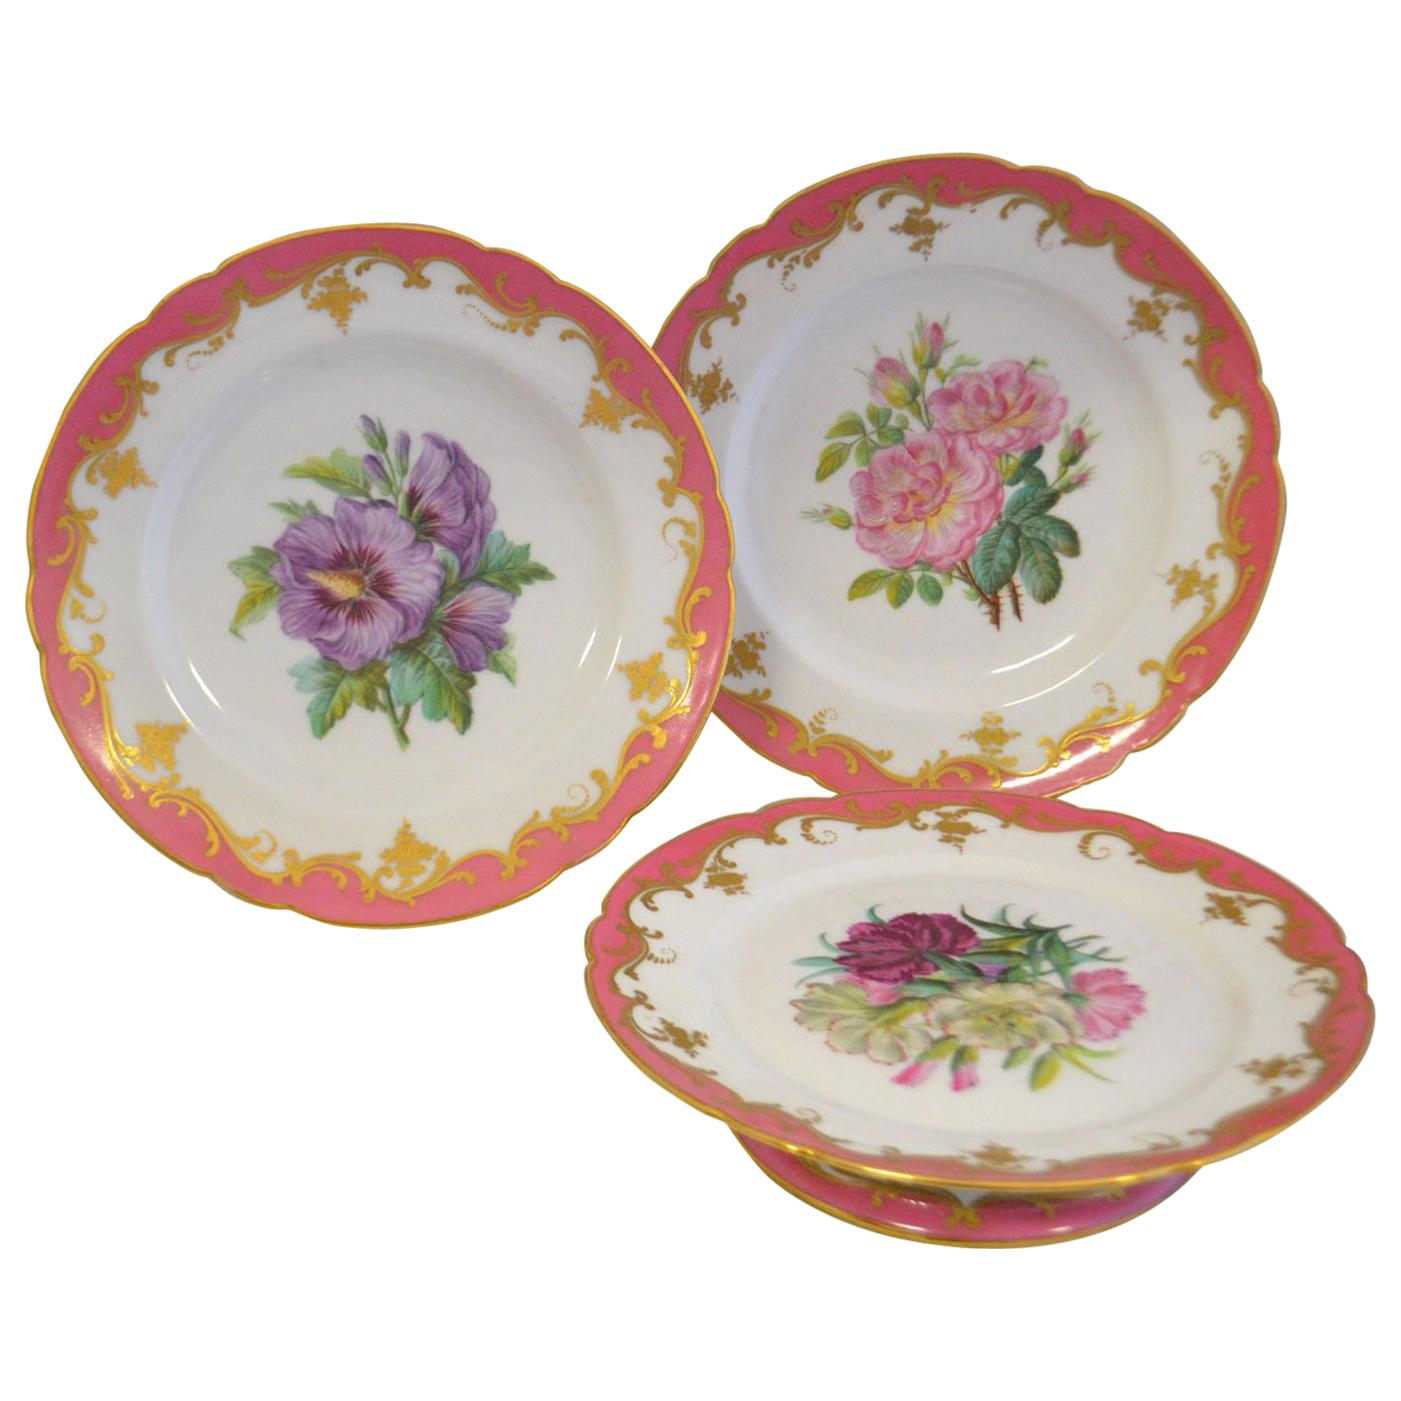 Rare Early 19th Century Paris Botanical Pink Porcelain Service for 24